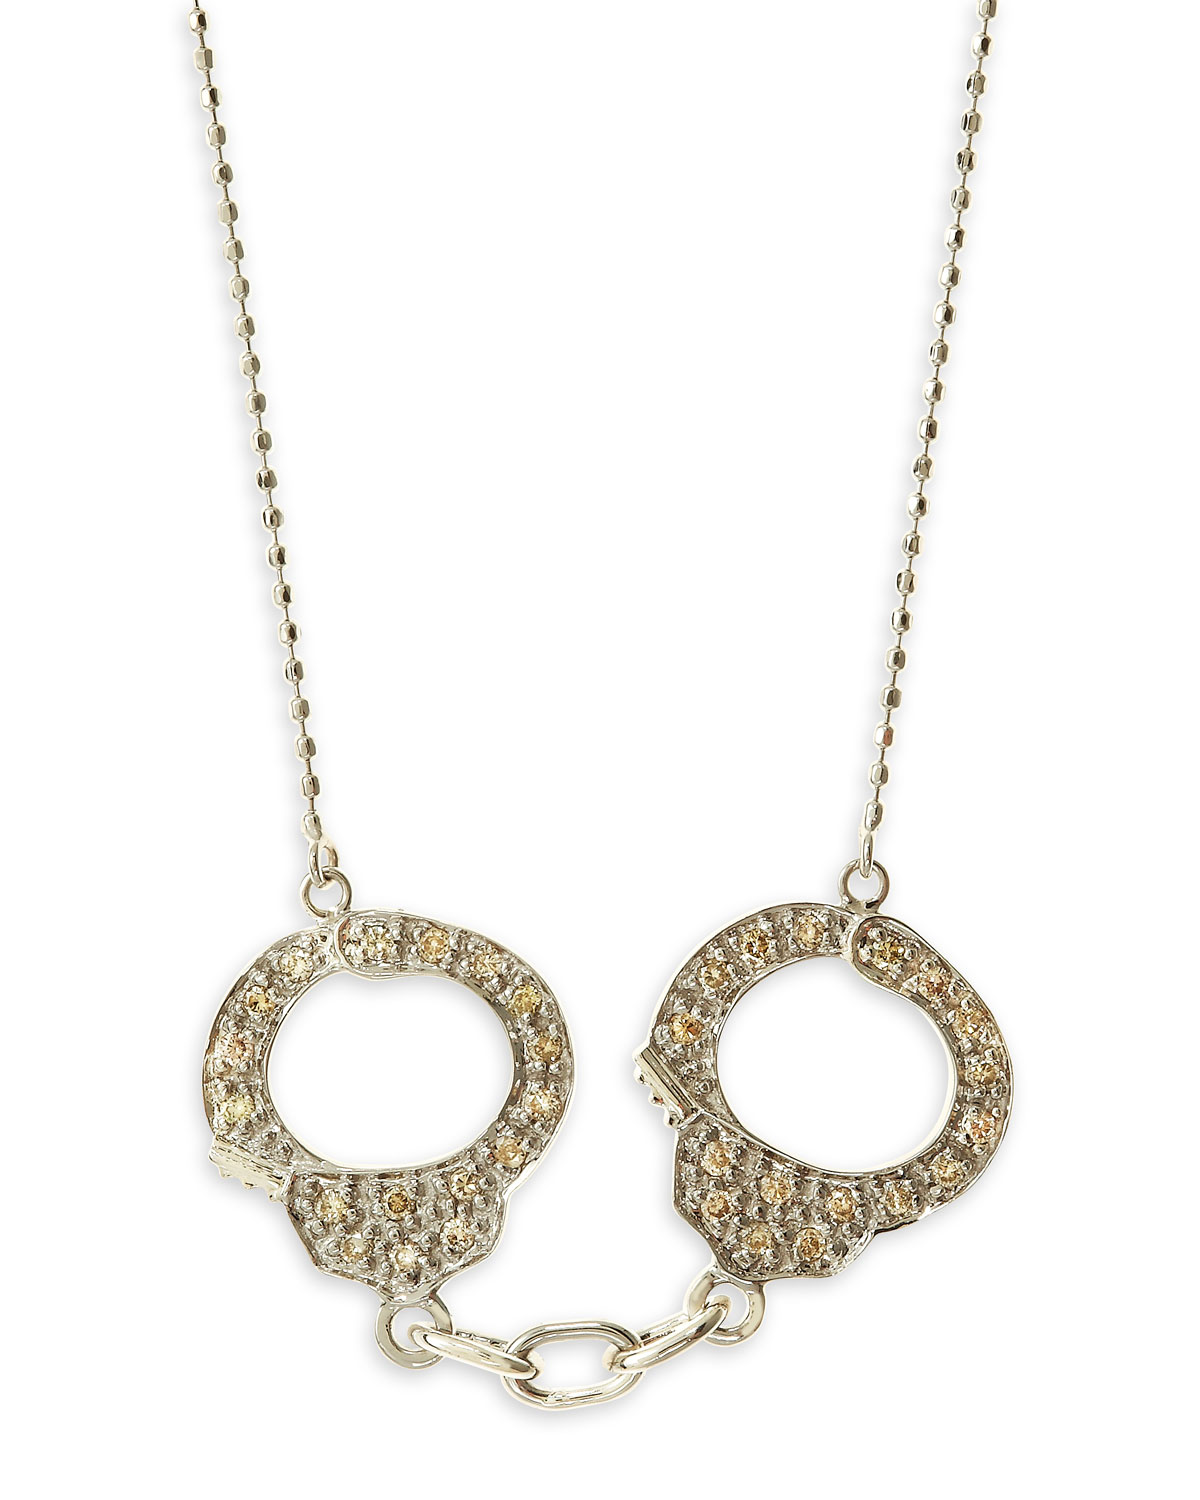 sydney evan handcuff necklace white gold in gold